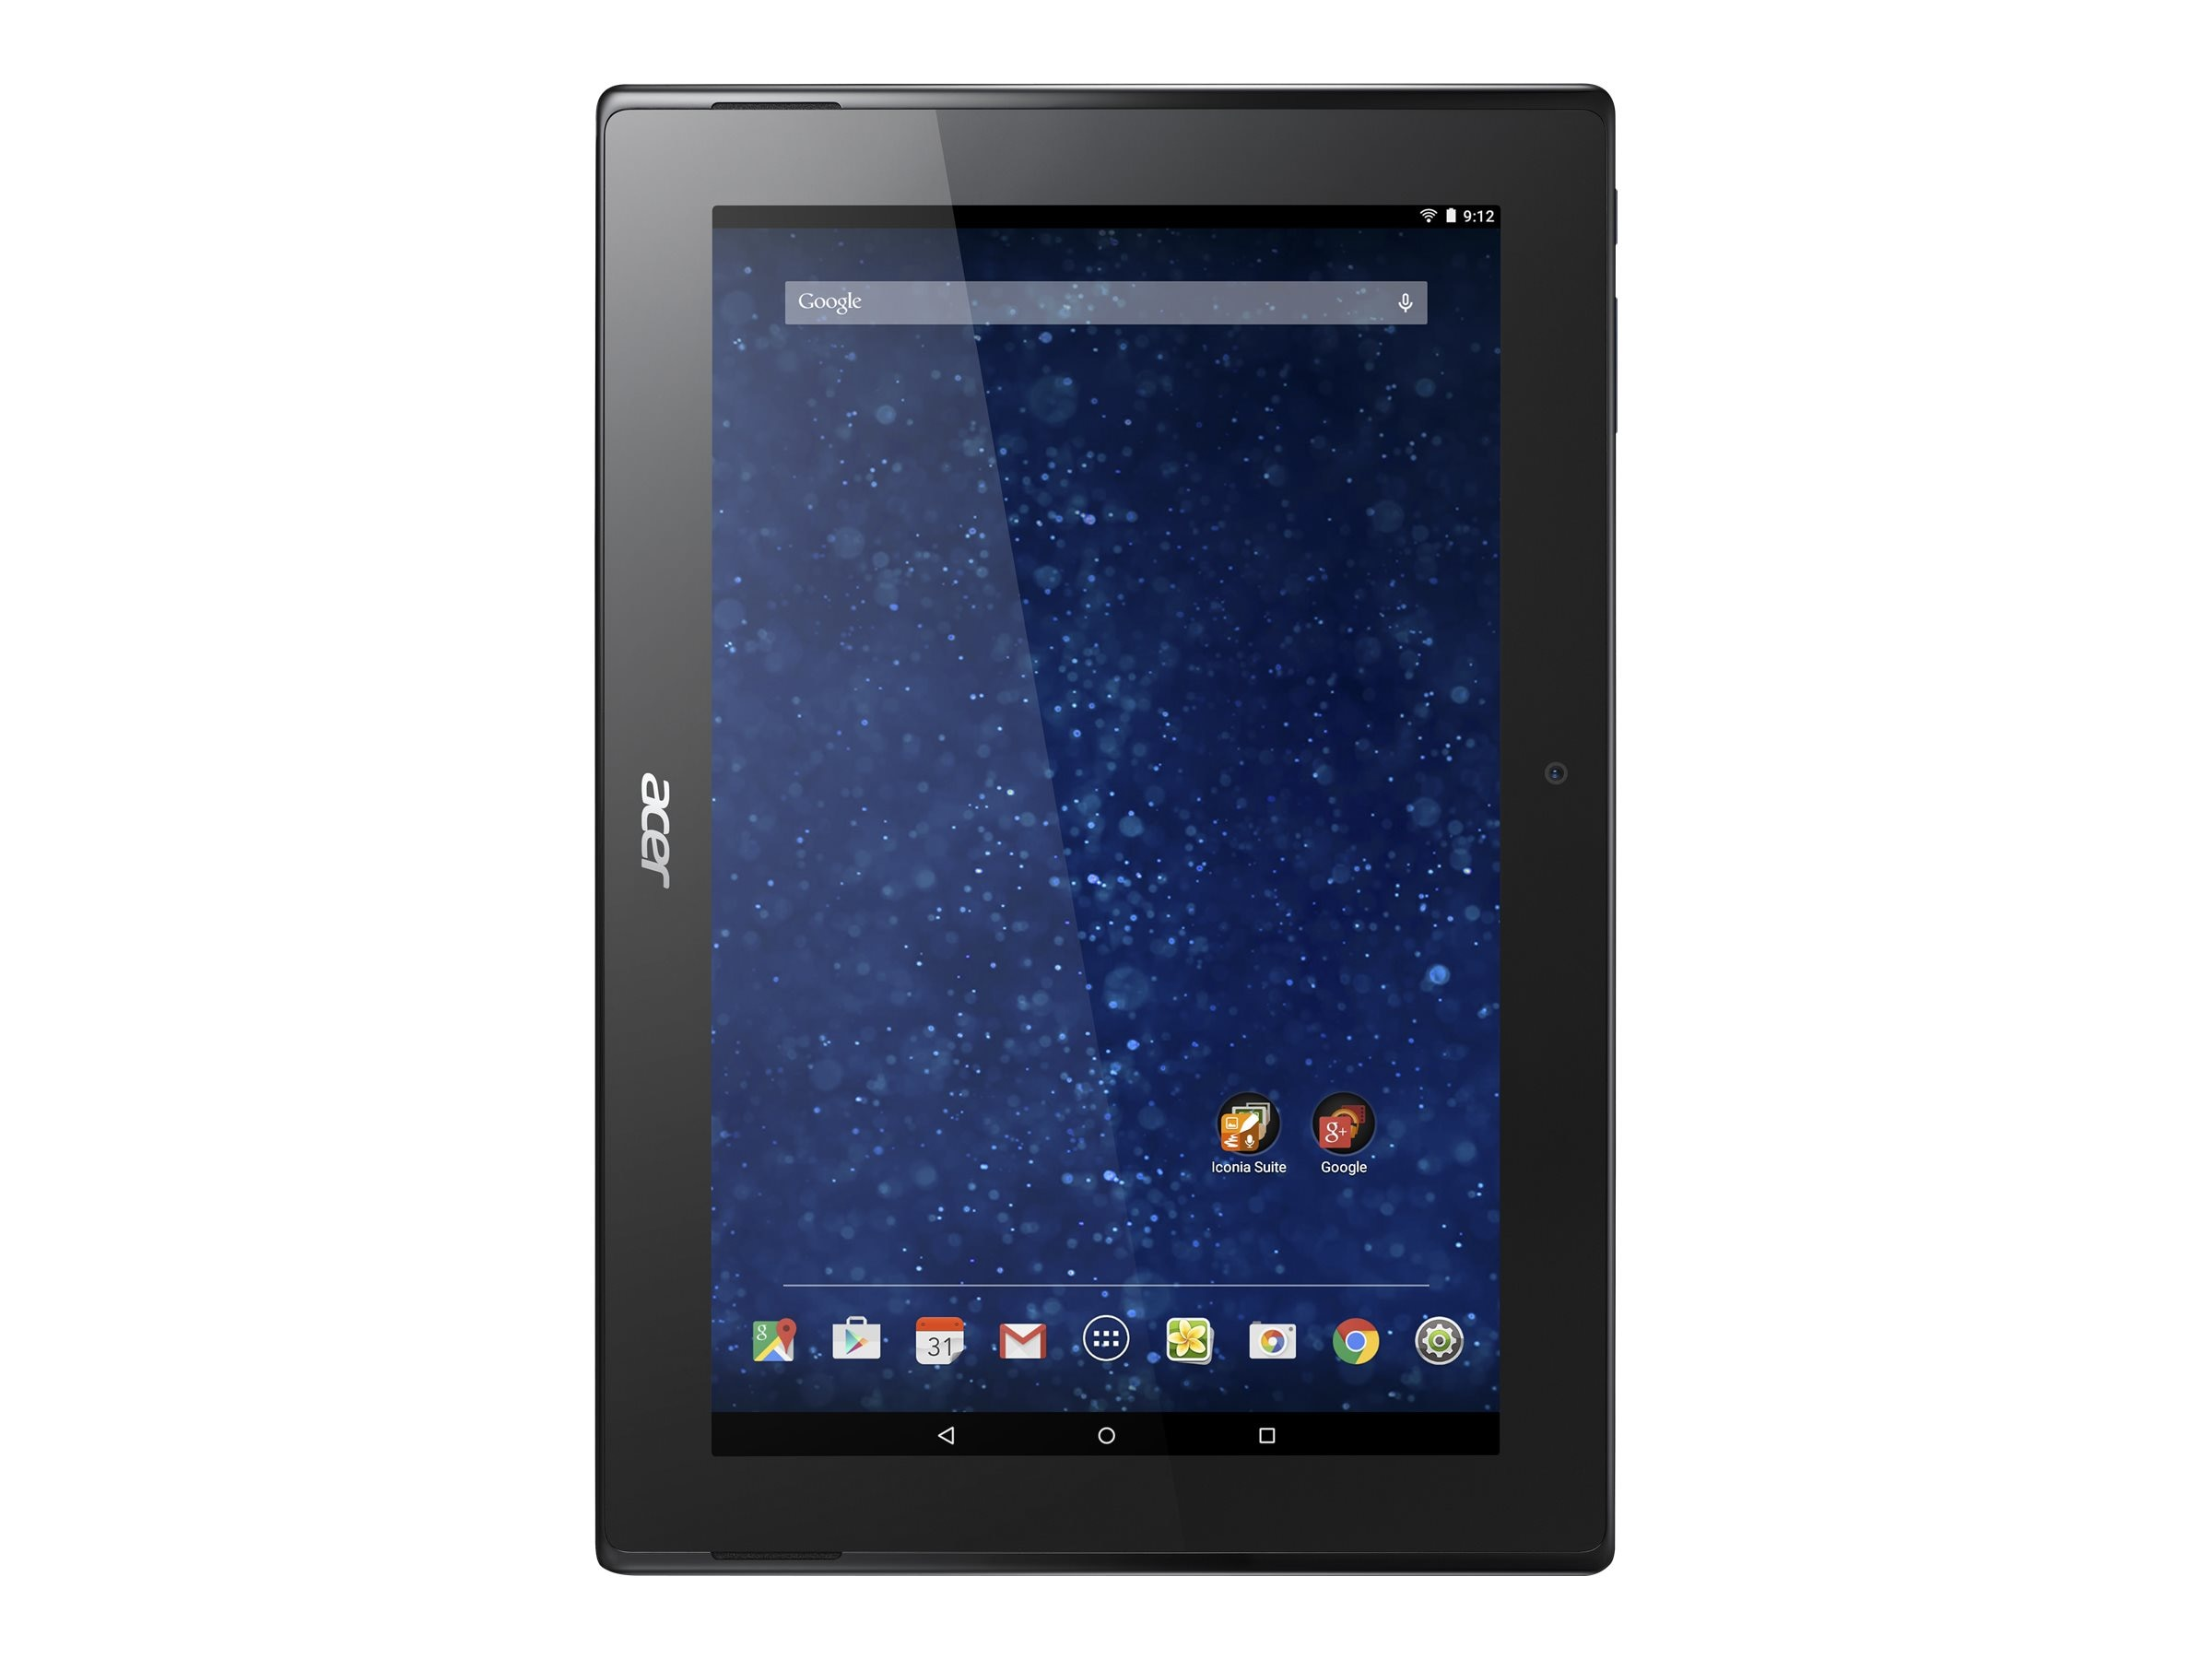 Acer Iconia A3-A30-18P1 1.33GHz processor Android 5.0 (Lollipop)